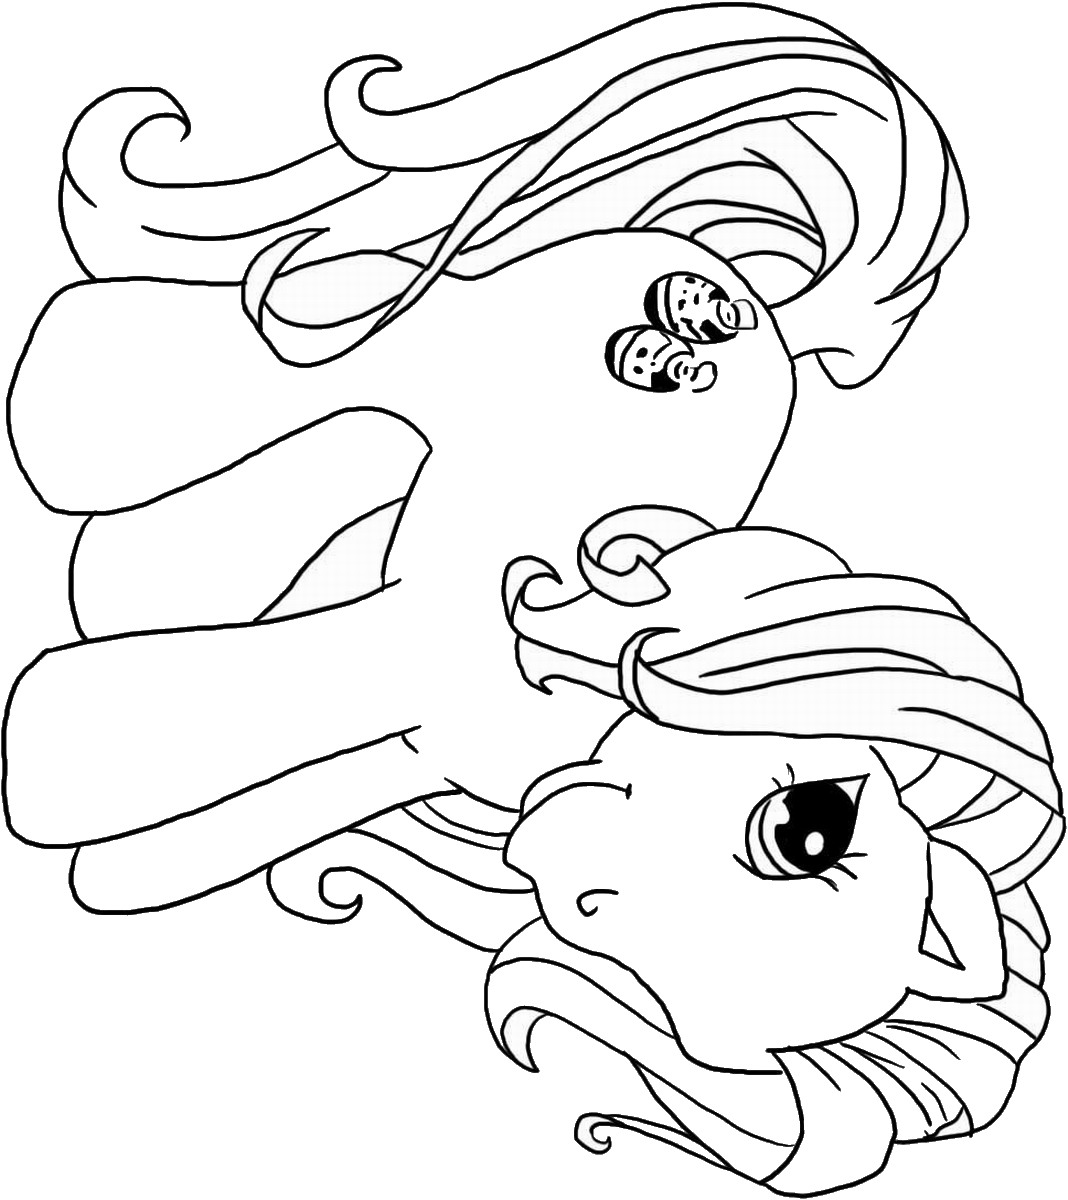 my little pony coloring images my little pony scootaloo coloring pages at getcolorings my images little pony coloring